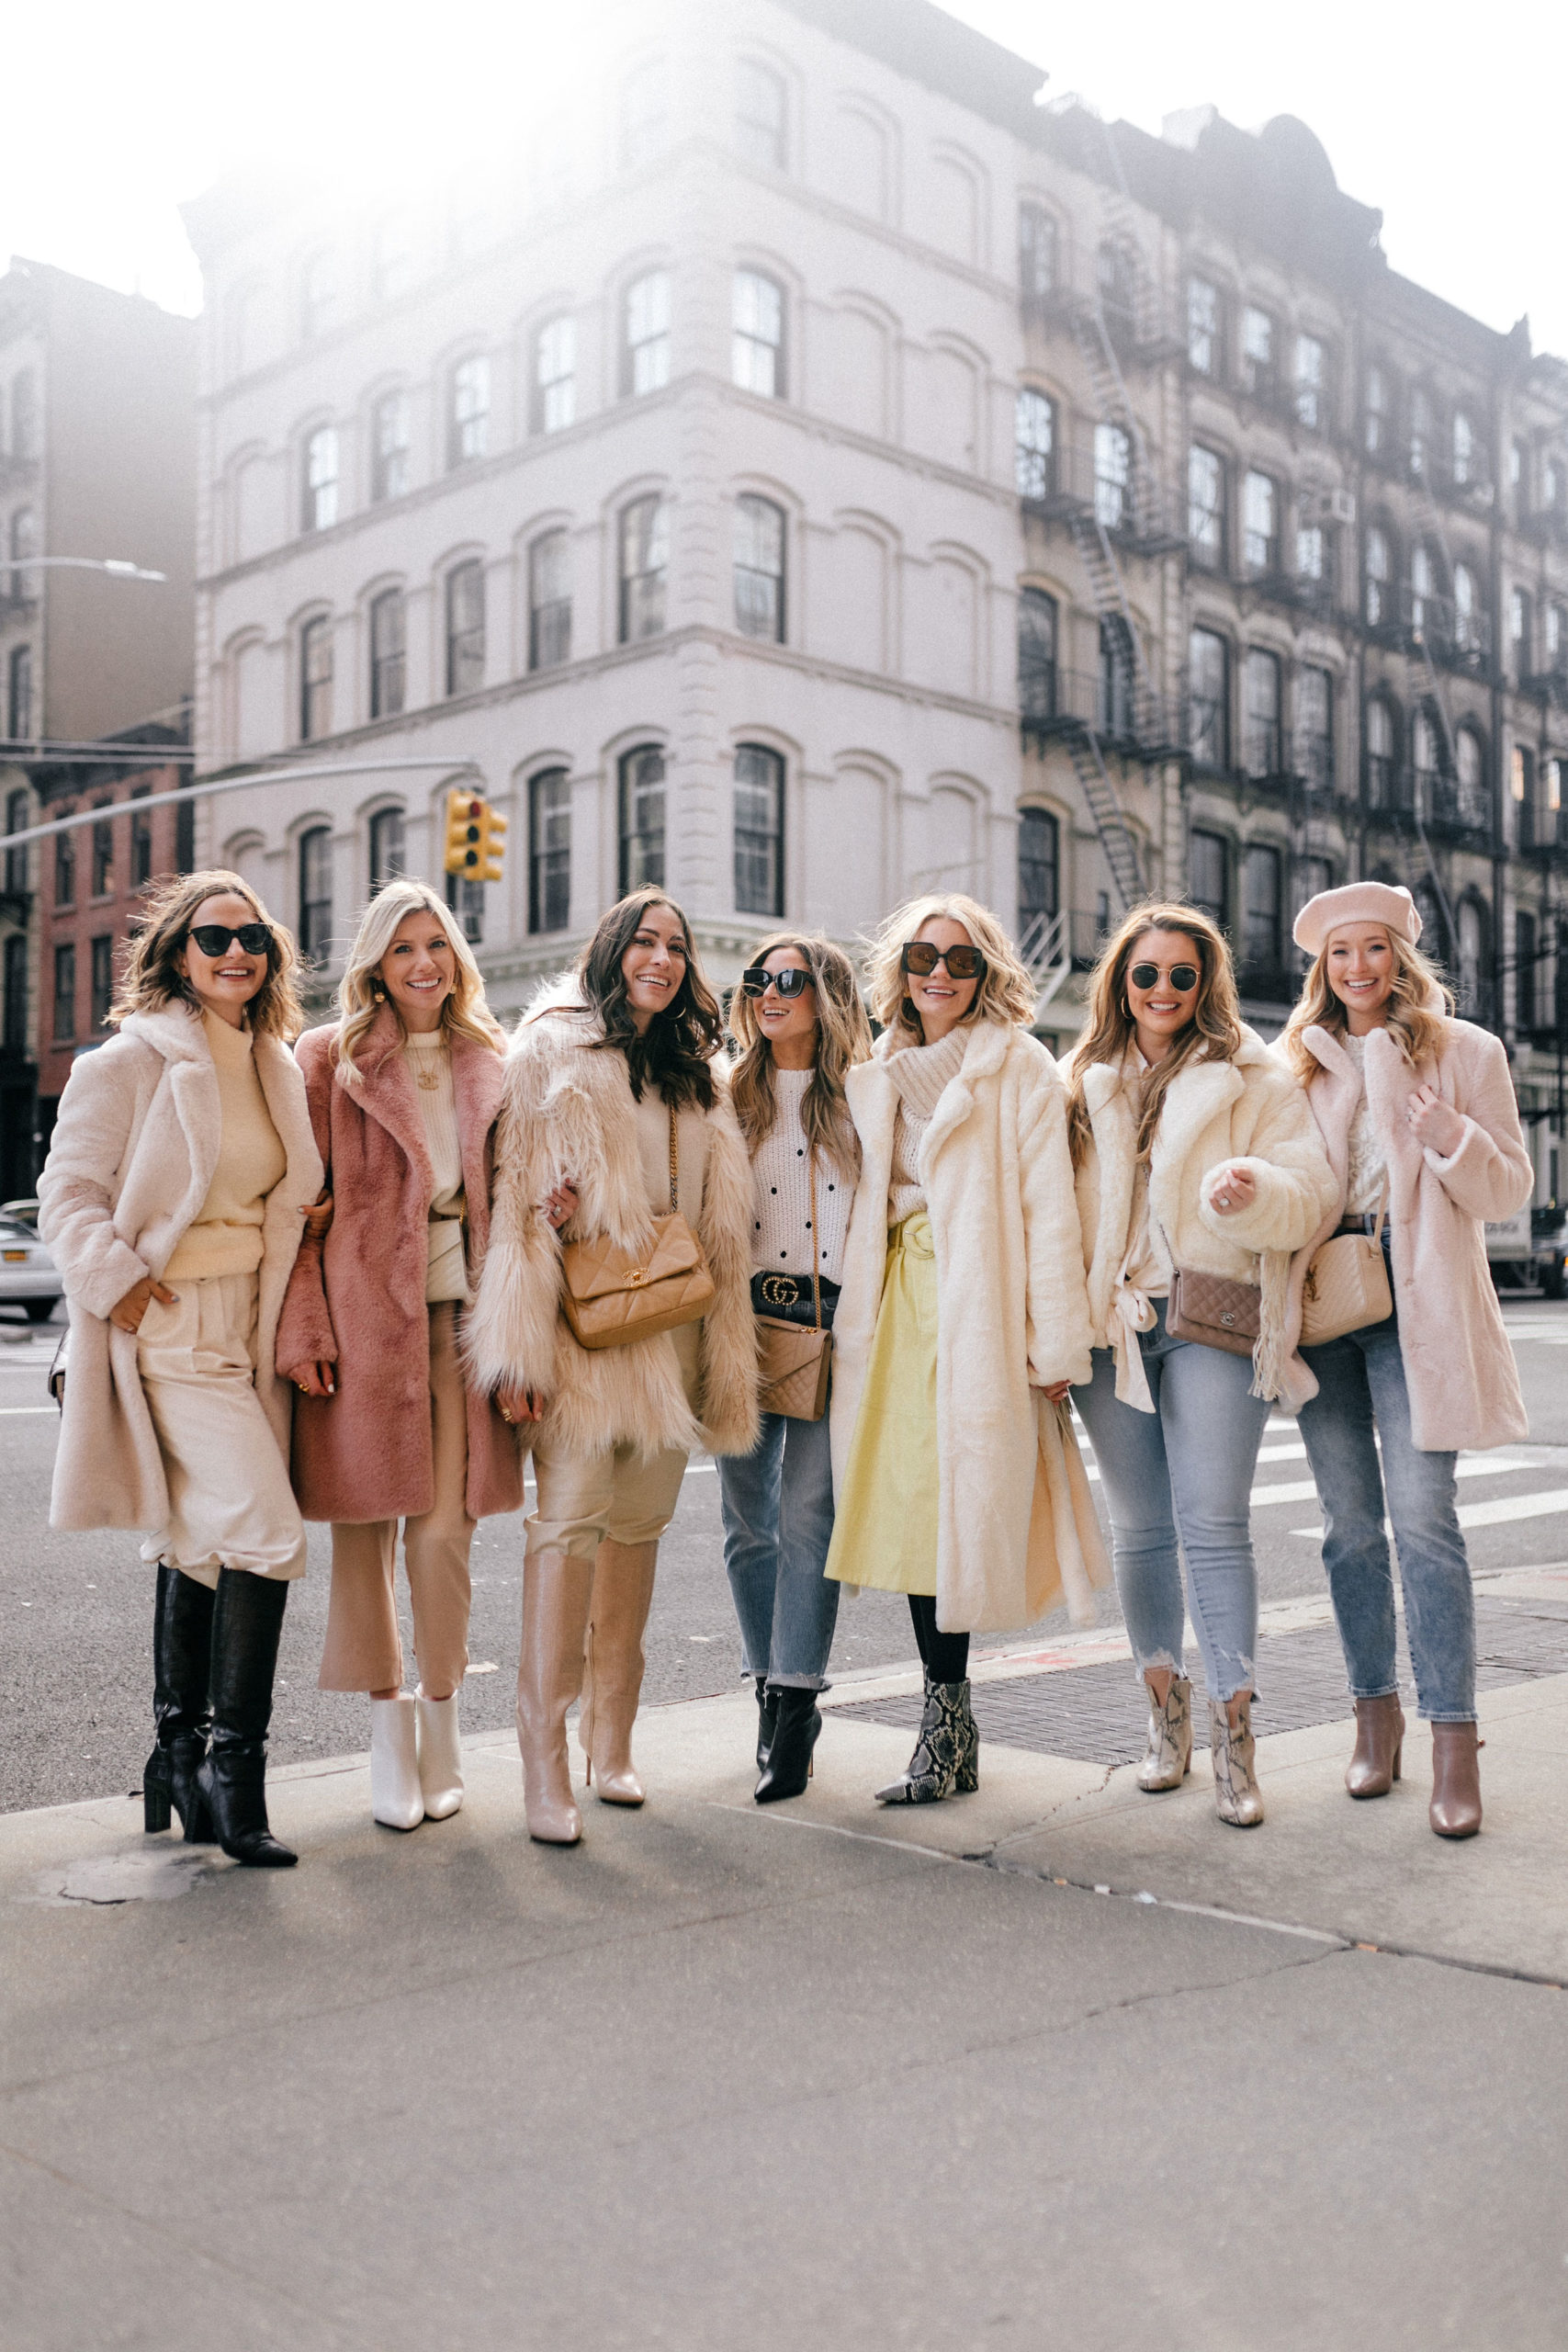 nyfw girl squad in new york city